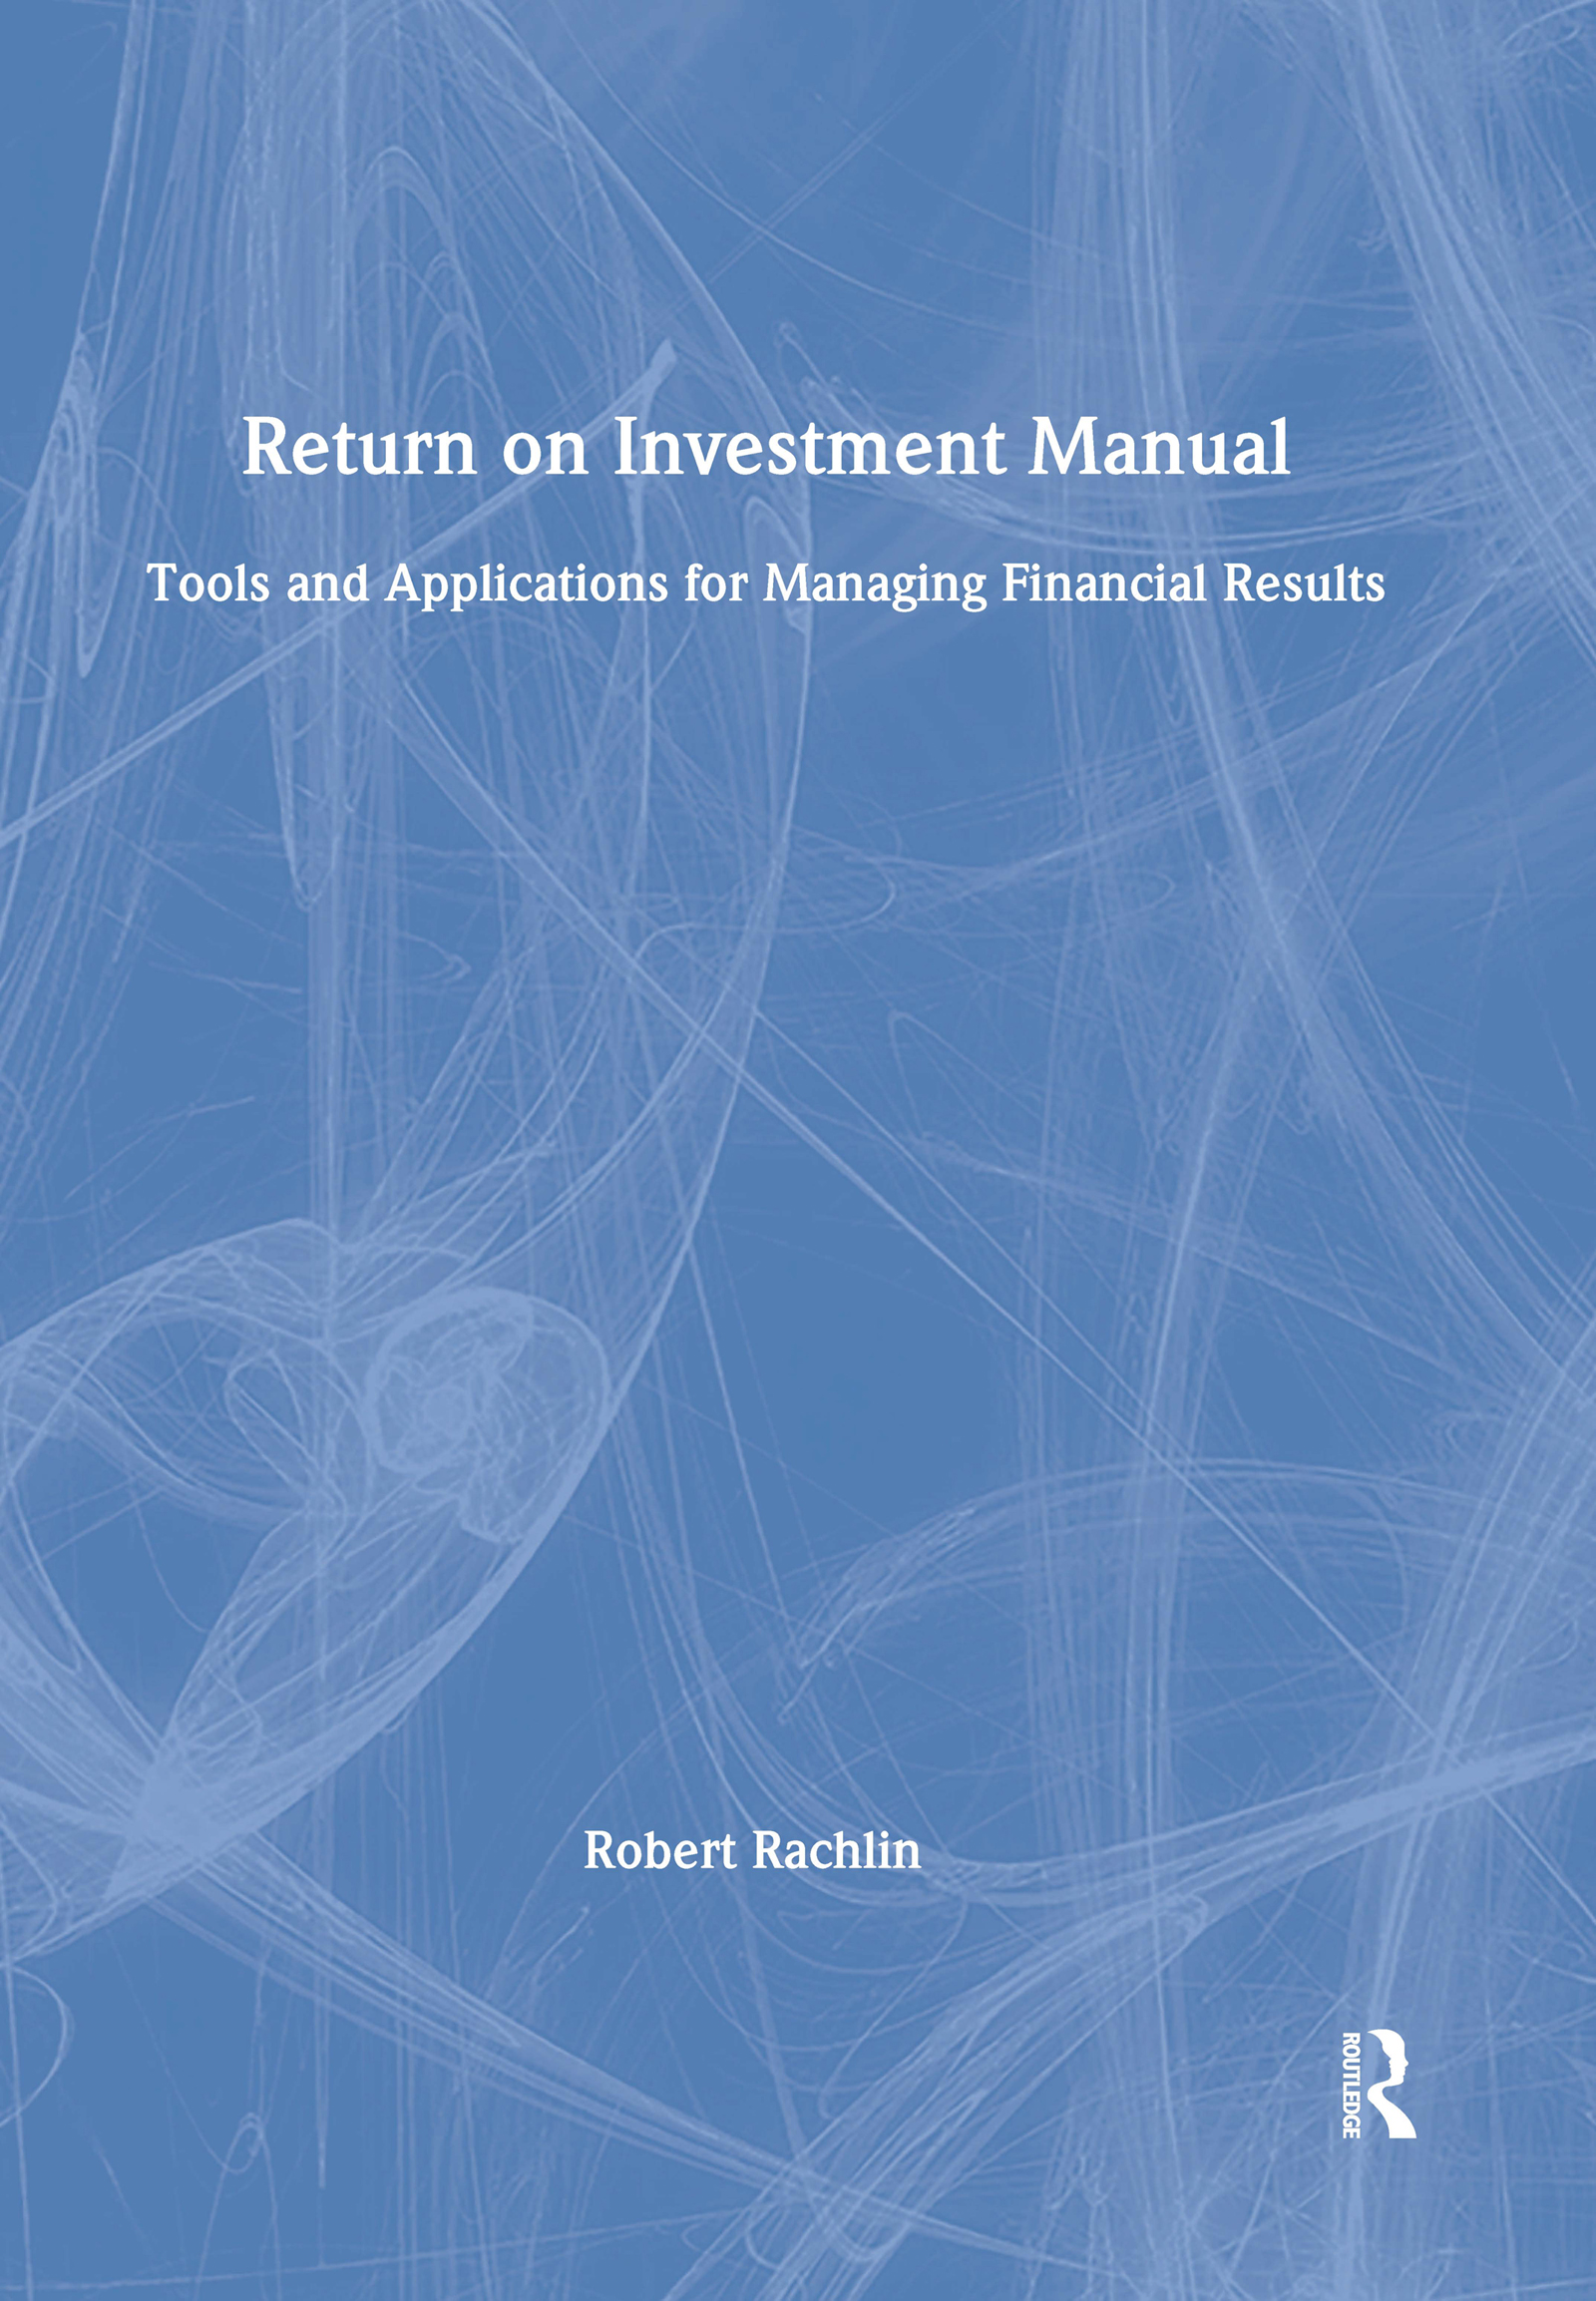 Return on Investment Manual: Tools and Applications for Managing Financial Results: Tools and Applications for Managing Financial Results, 1st Edition (Hardback) book cover